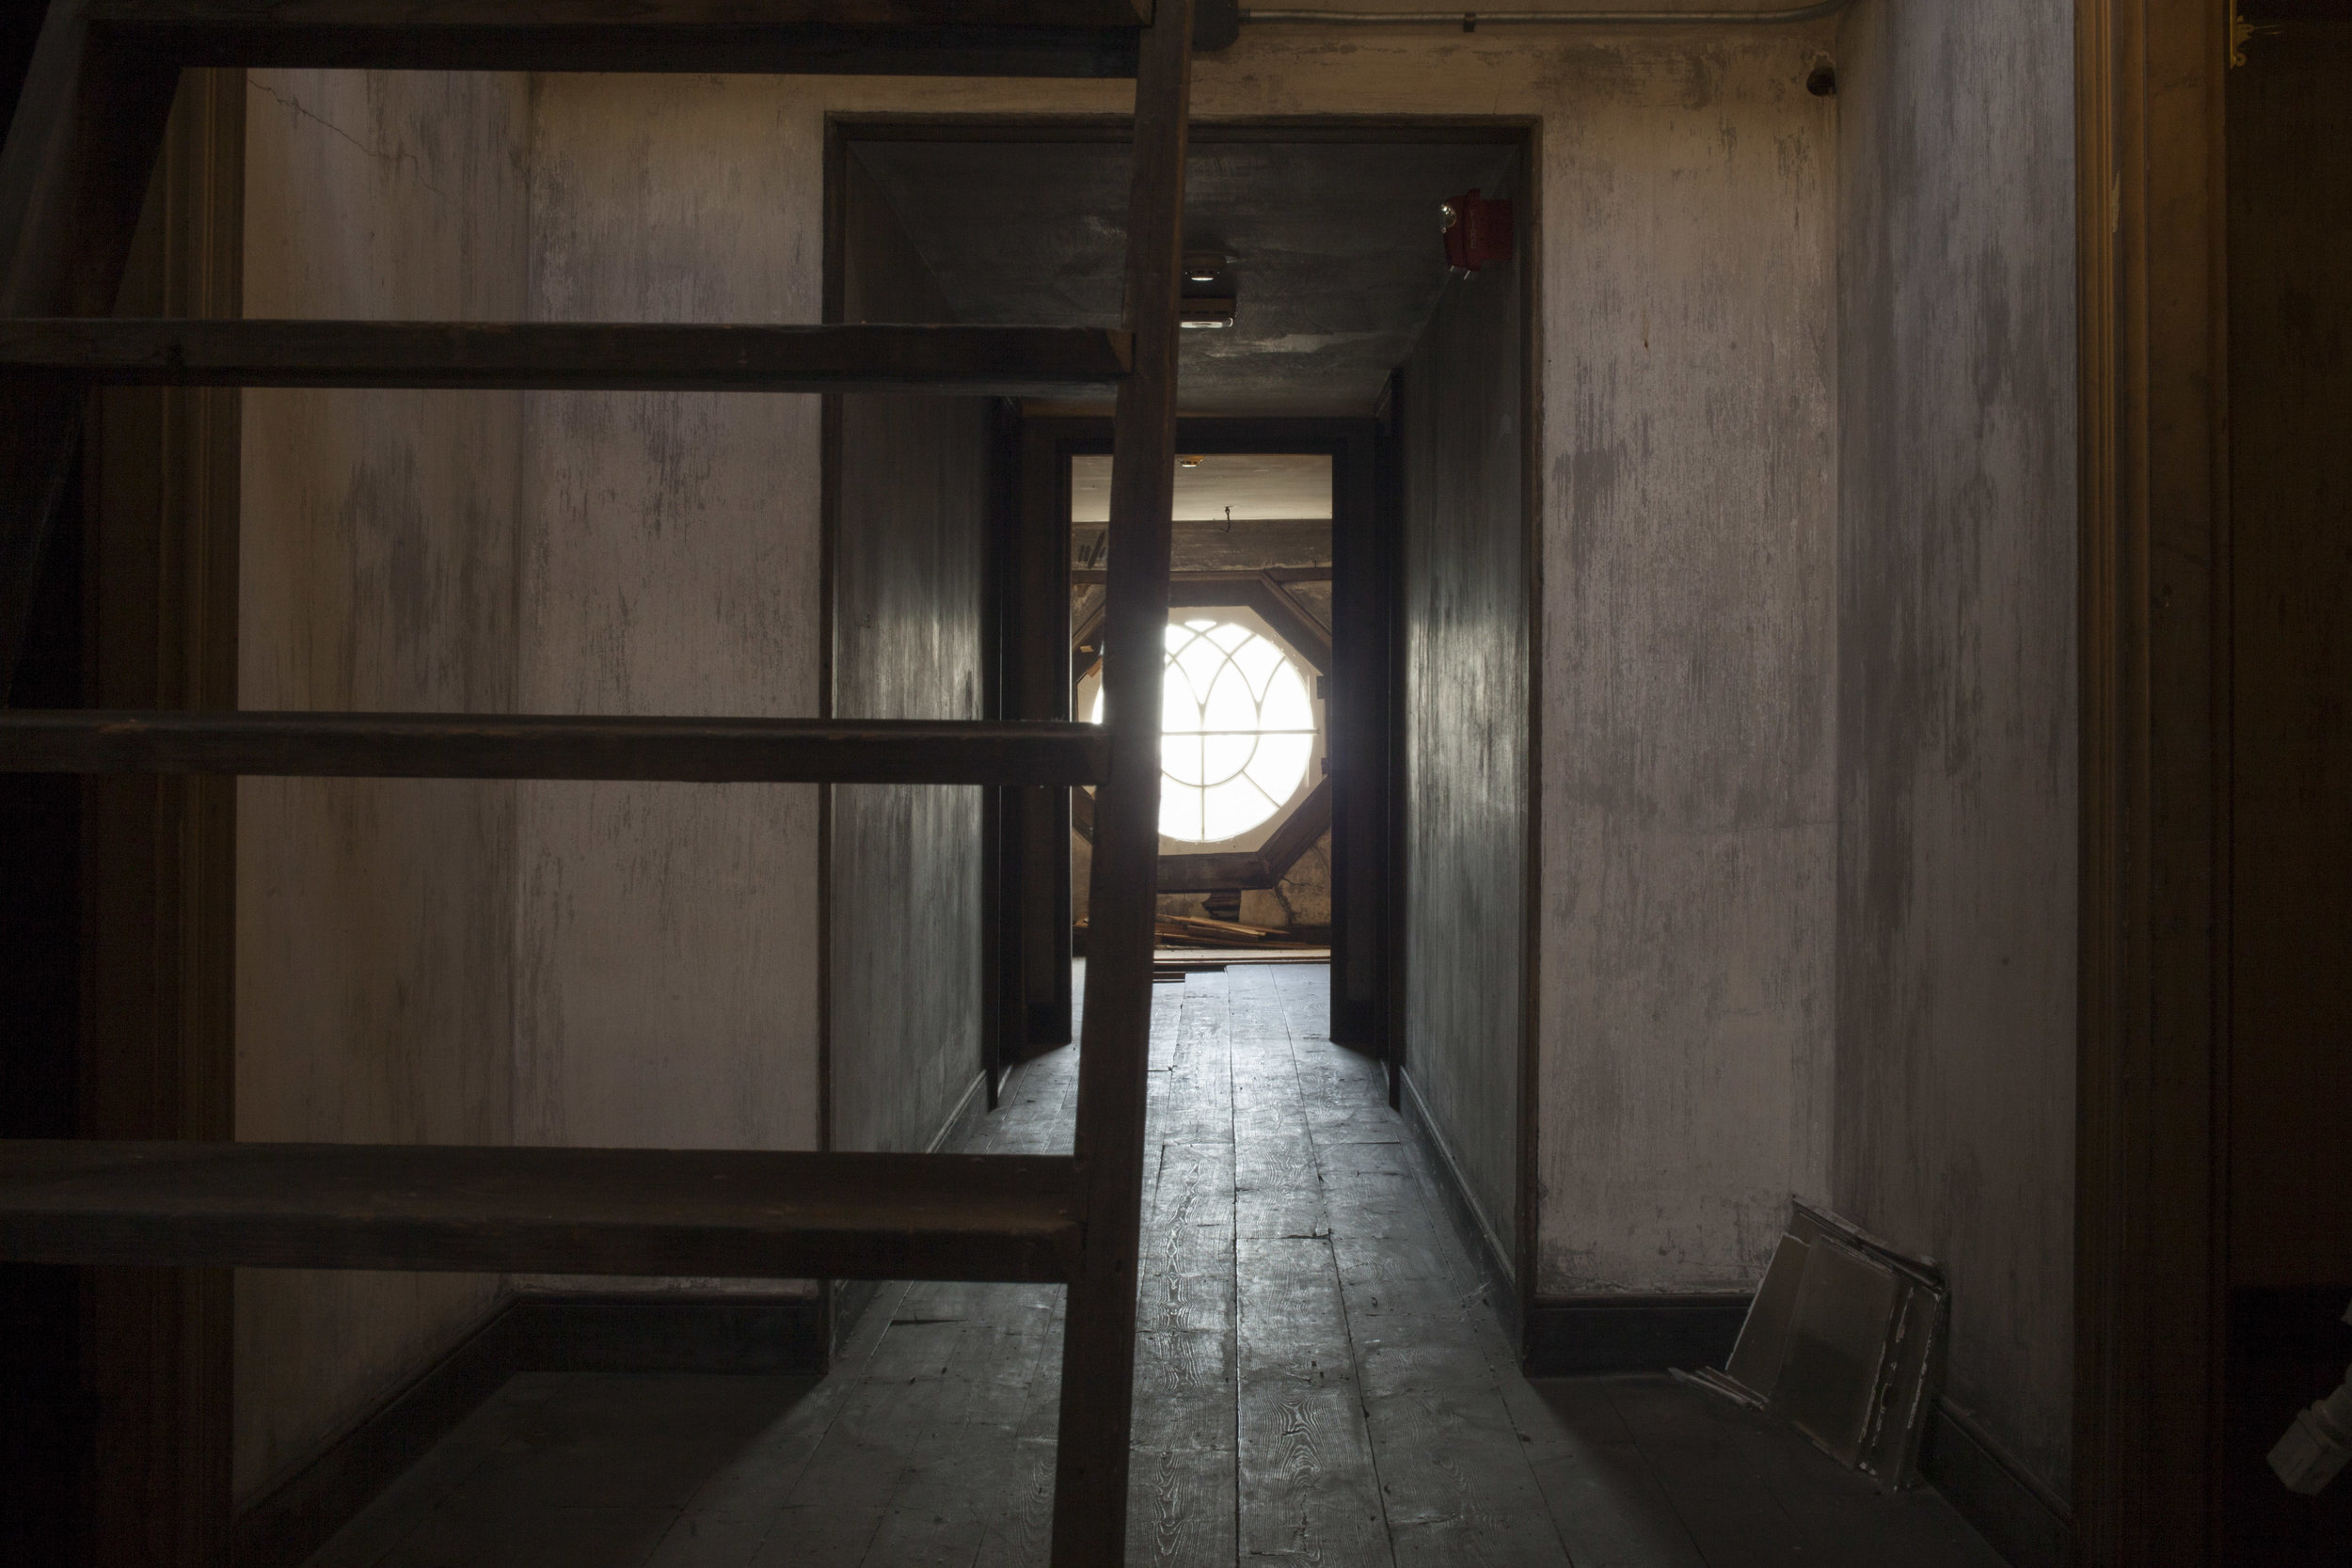 The attic, or garret, of The Woodlands Mansion. Photo: Starr Herr-Cardillo